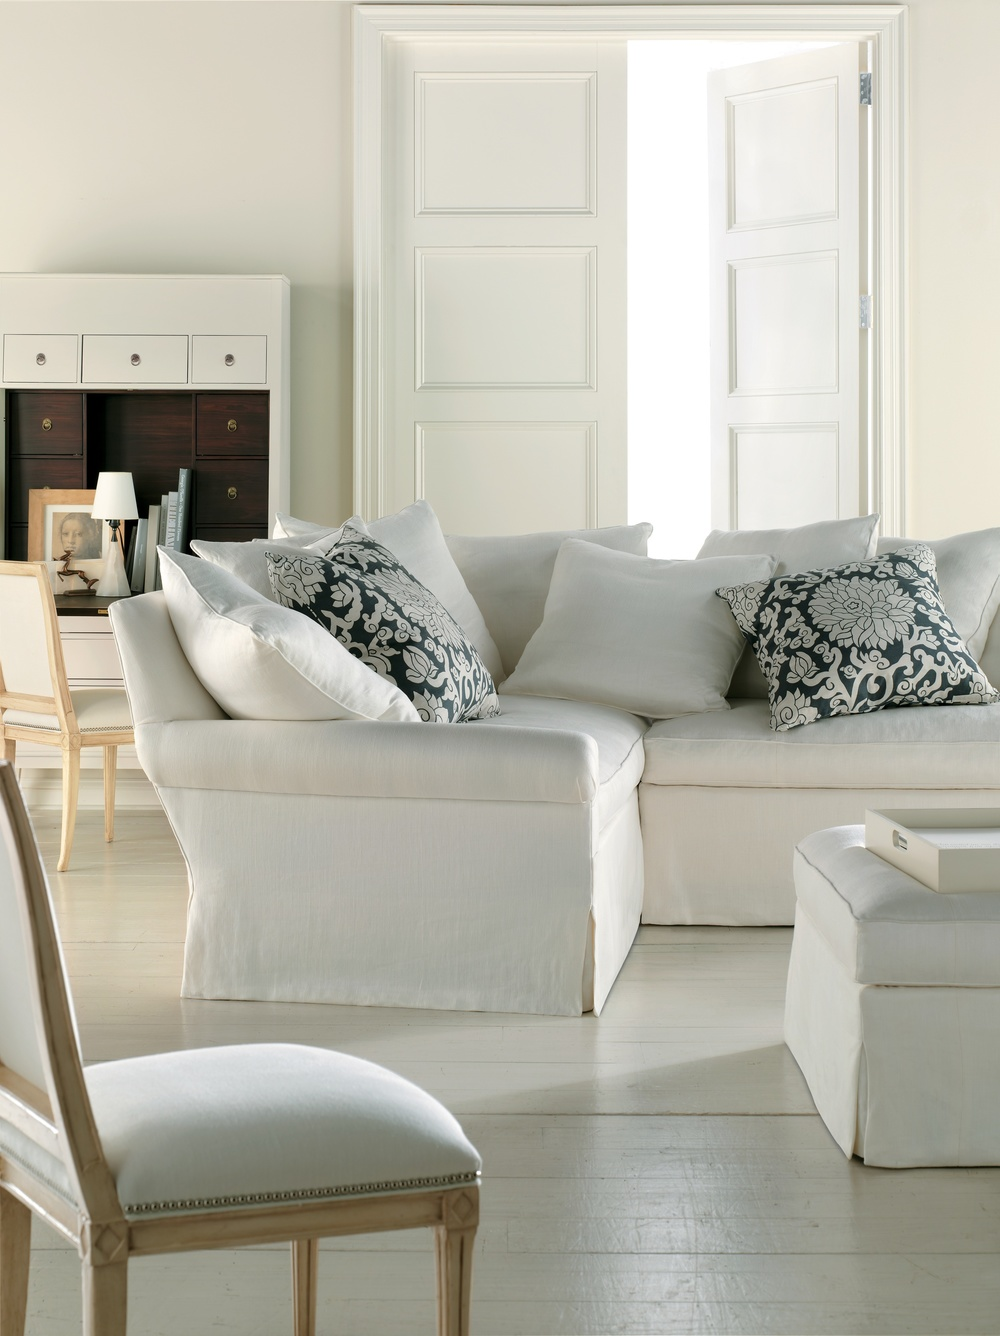 Hickory Chair - Silhouettes Sectional